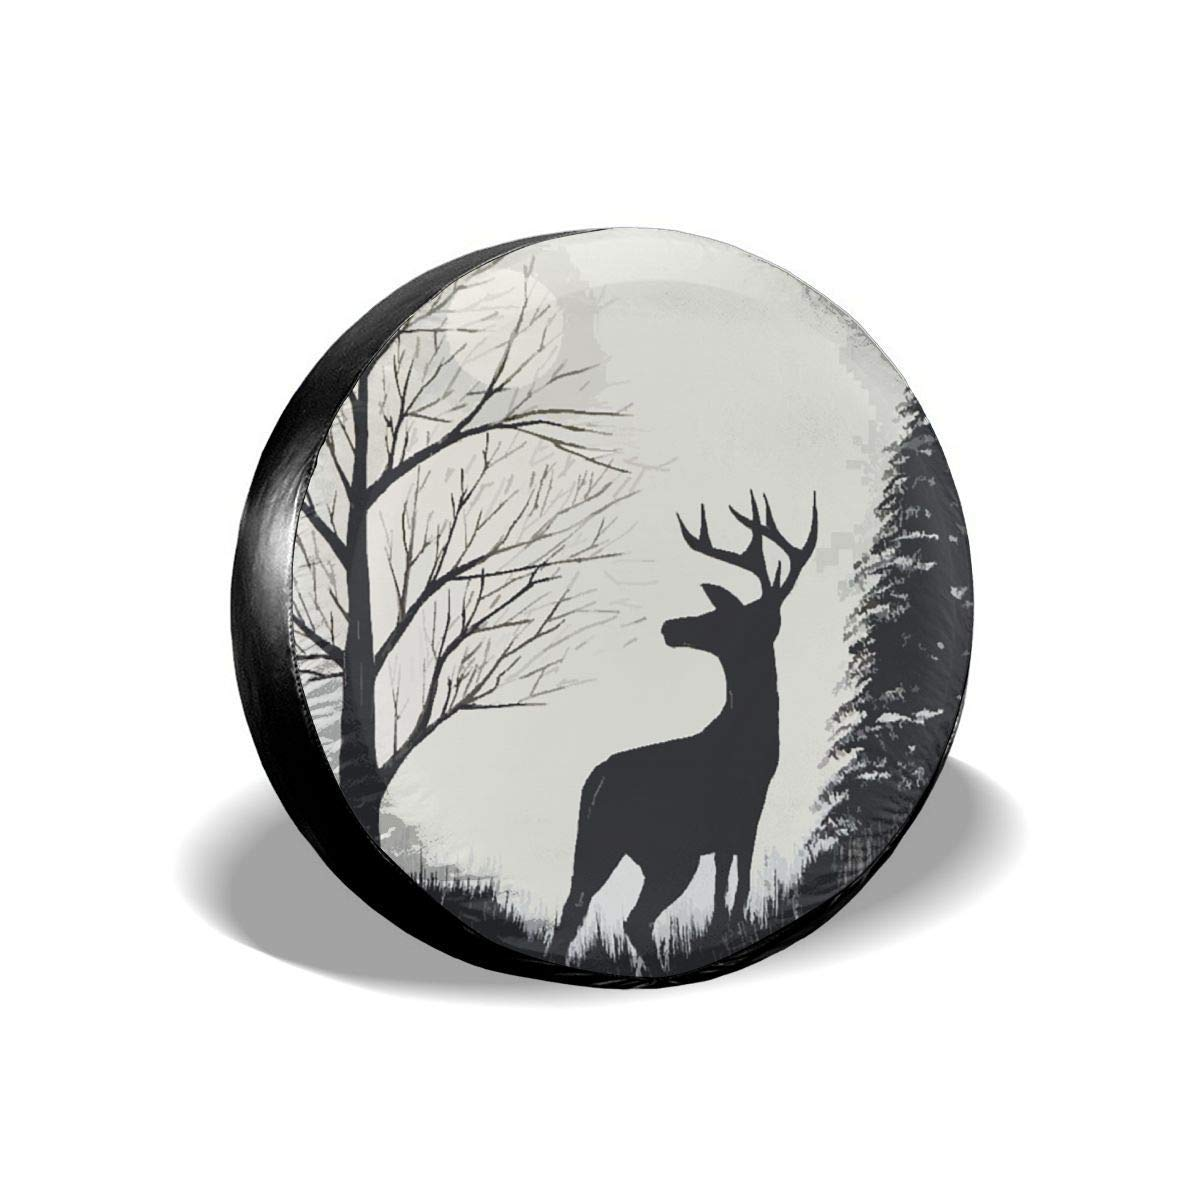 Vbnbvn Reserveradabdeckung Deer Painting Polyester Universal Dust-Proof Corrosion Protection Wheel Covers for Jeep Trailer RV SUV Truck Camper Travel Trailer Accessories 14,15,16,17 Inch